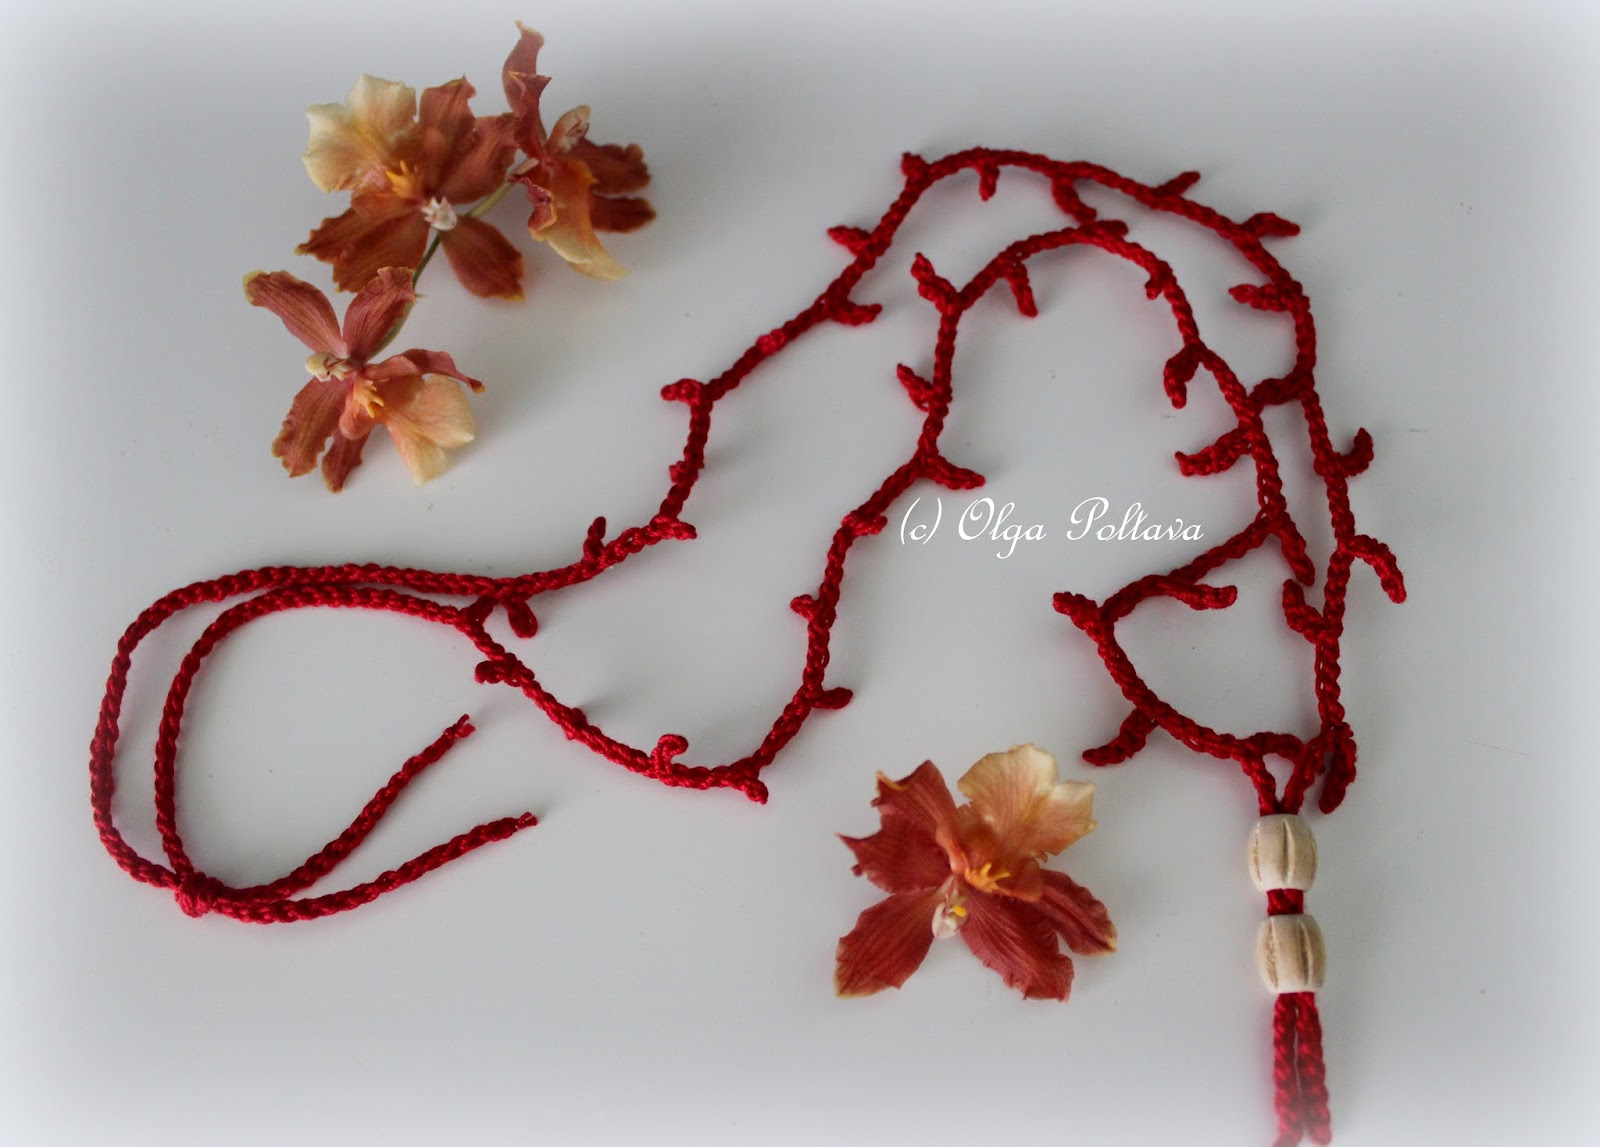 Lacy Crochet Crochet Necklace Tutorial